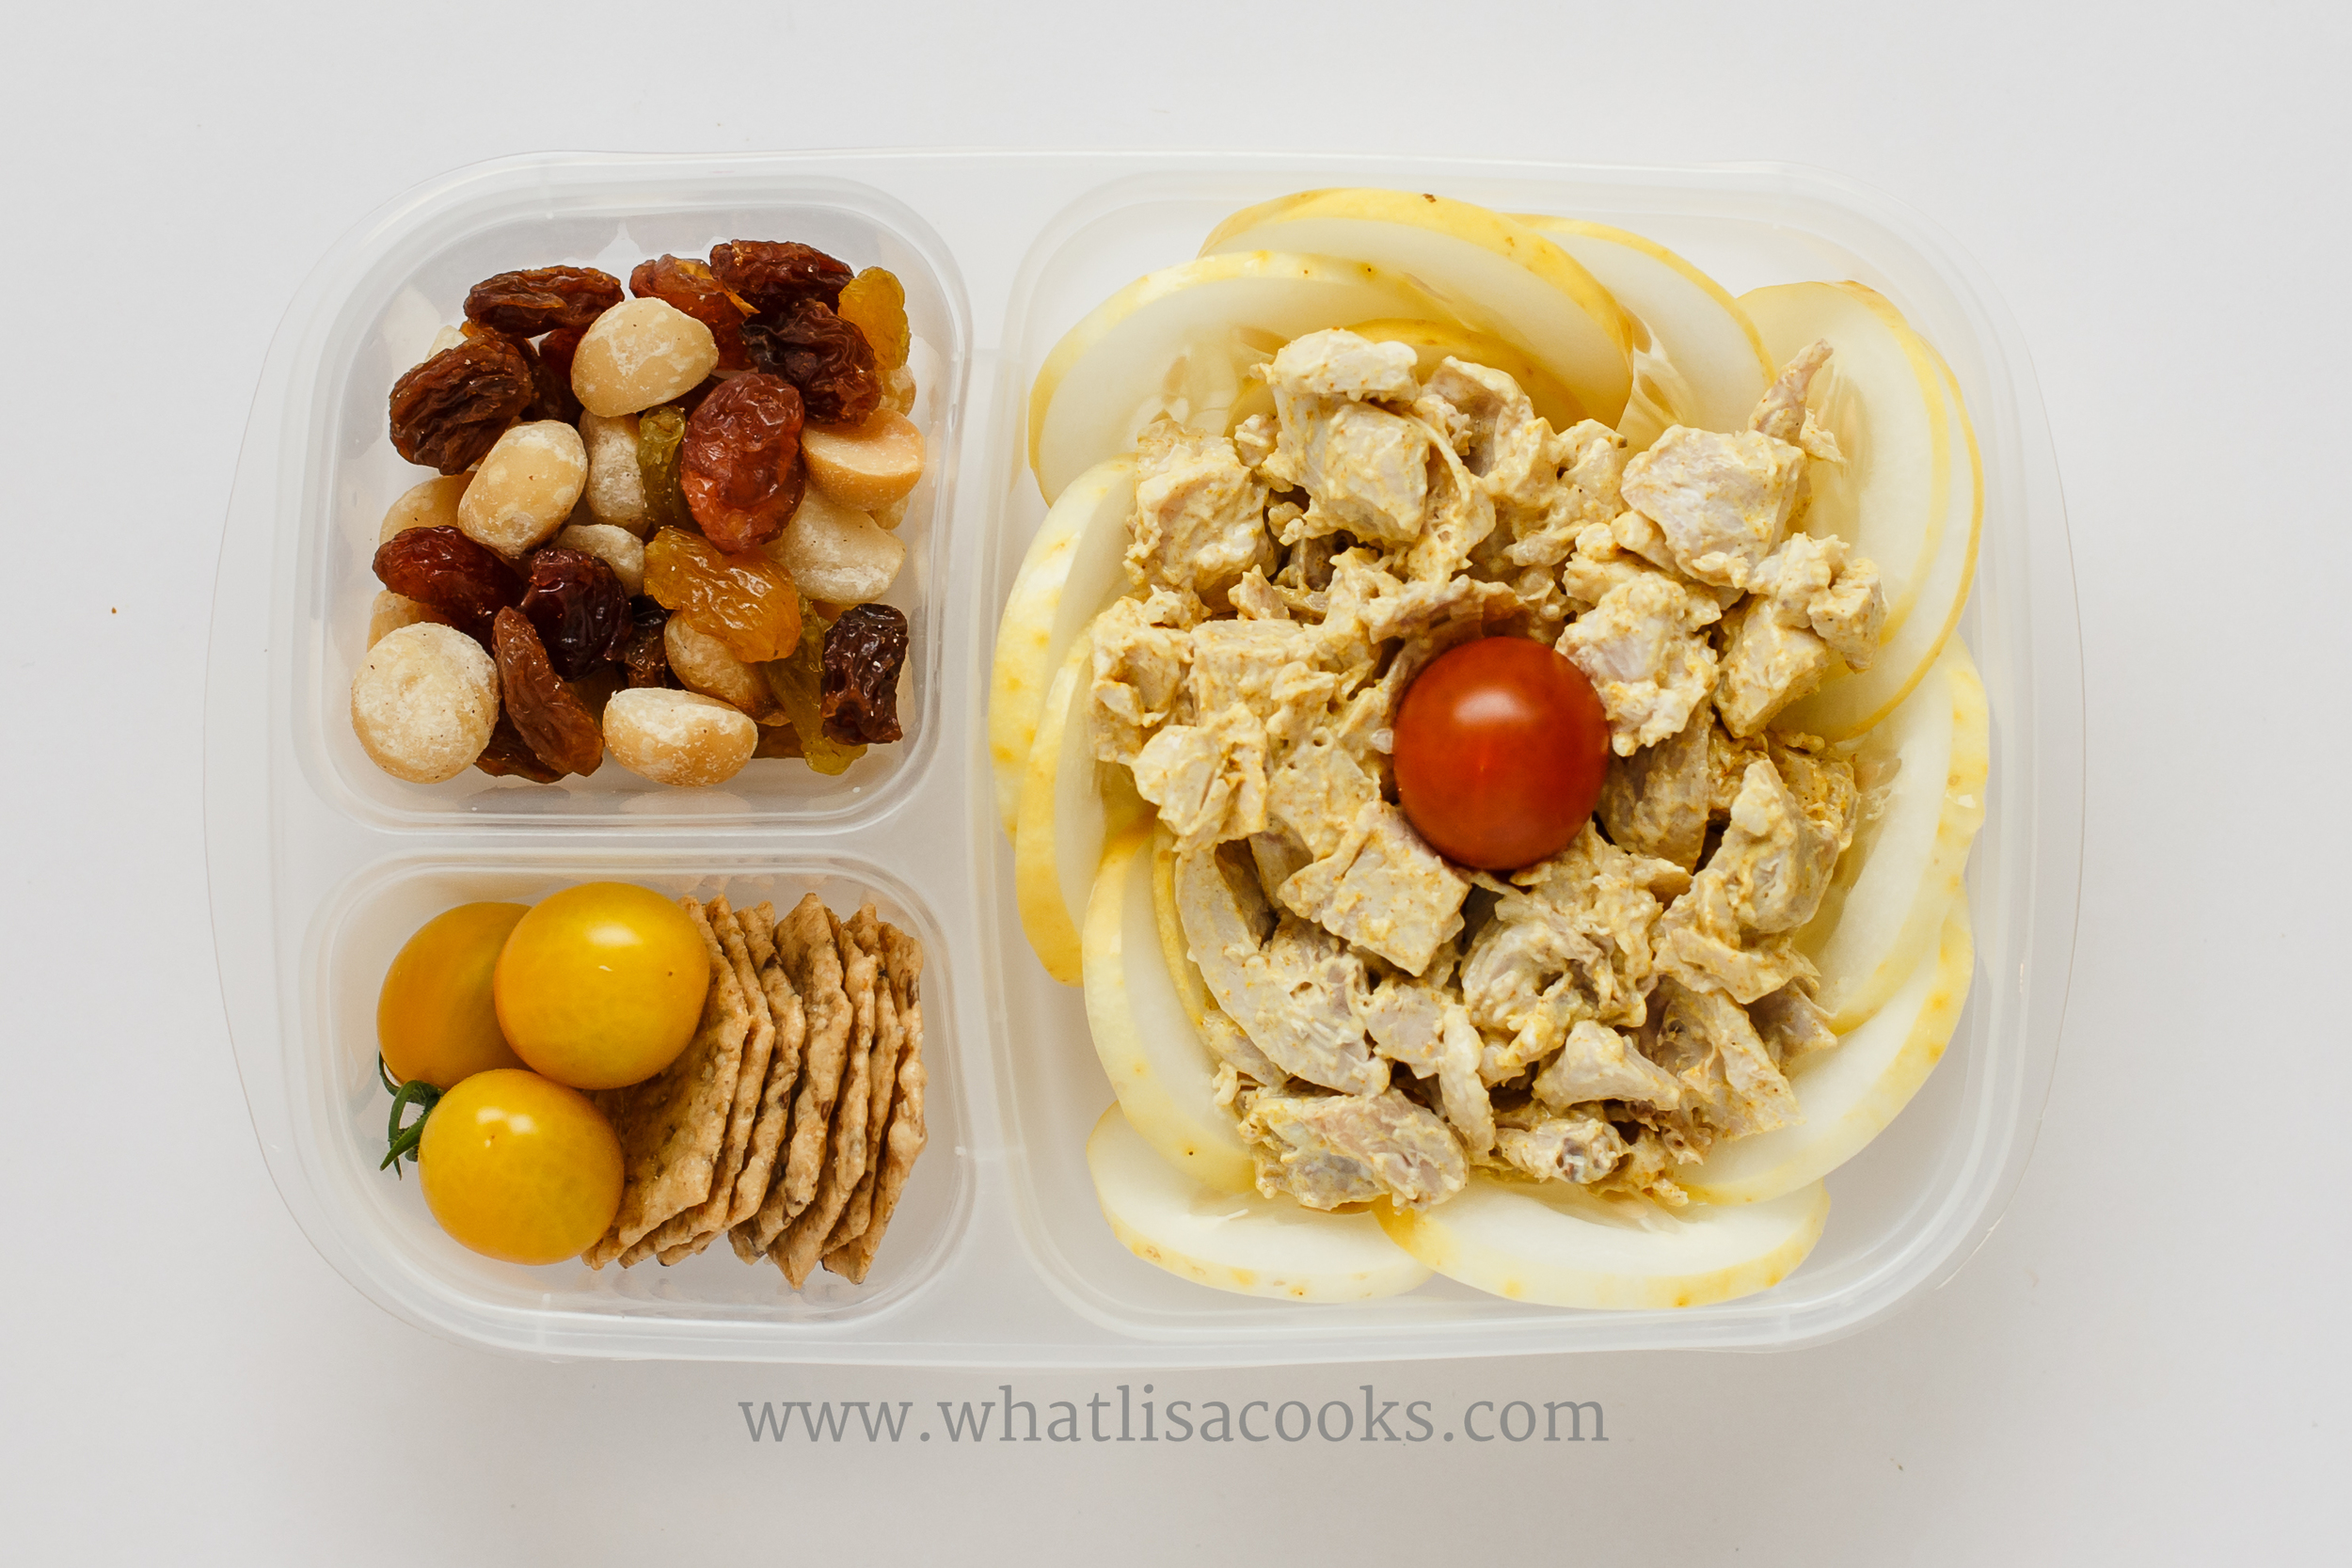 Curry chicken salad: leftover roasted chicken, mayo, curry powder and salt.  With sliced yellow cucumbers, tomatoes, rice crackers, raisins and macadamia nuts.